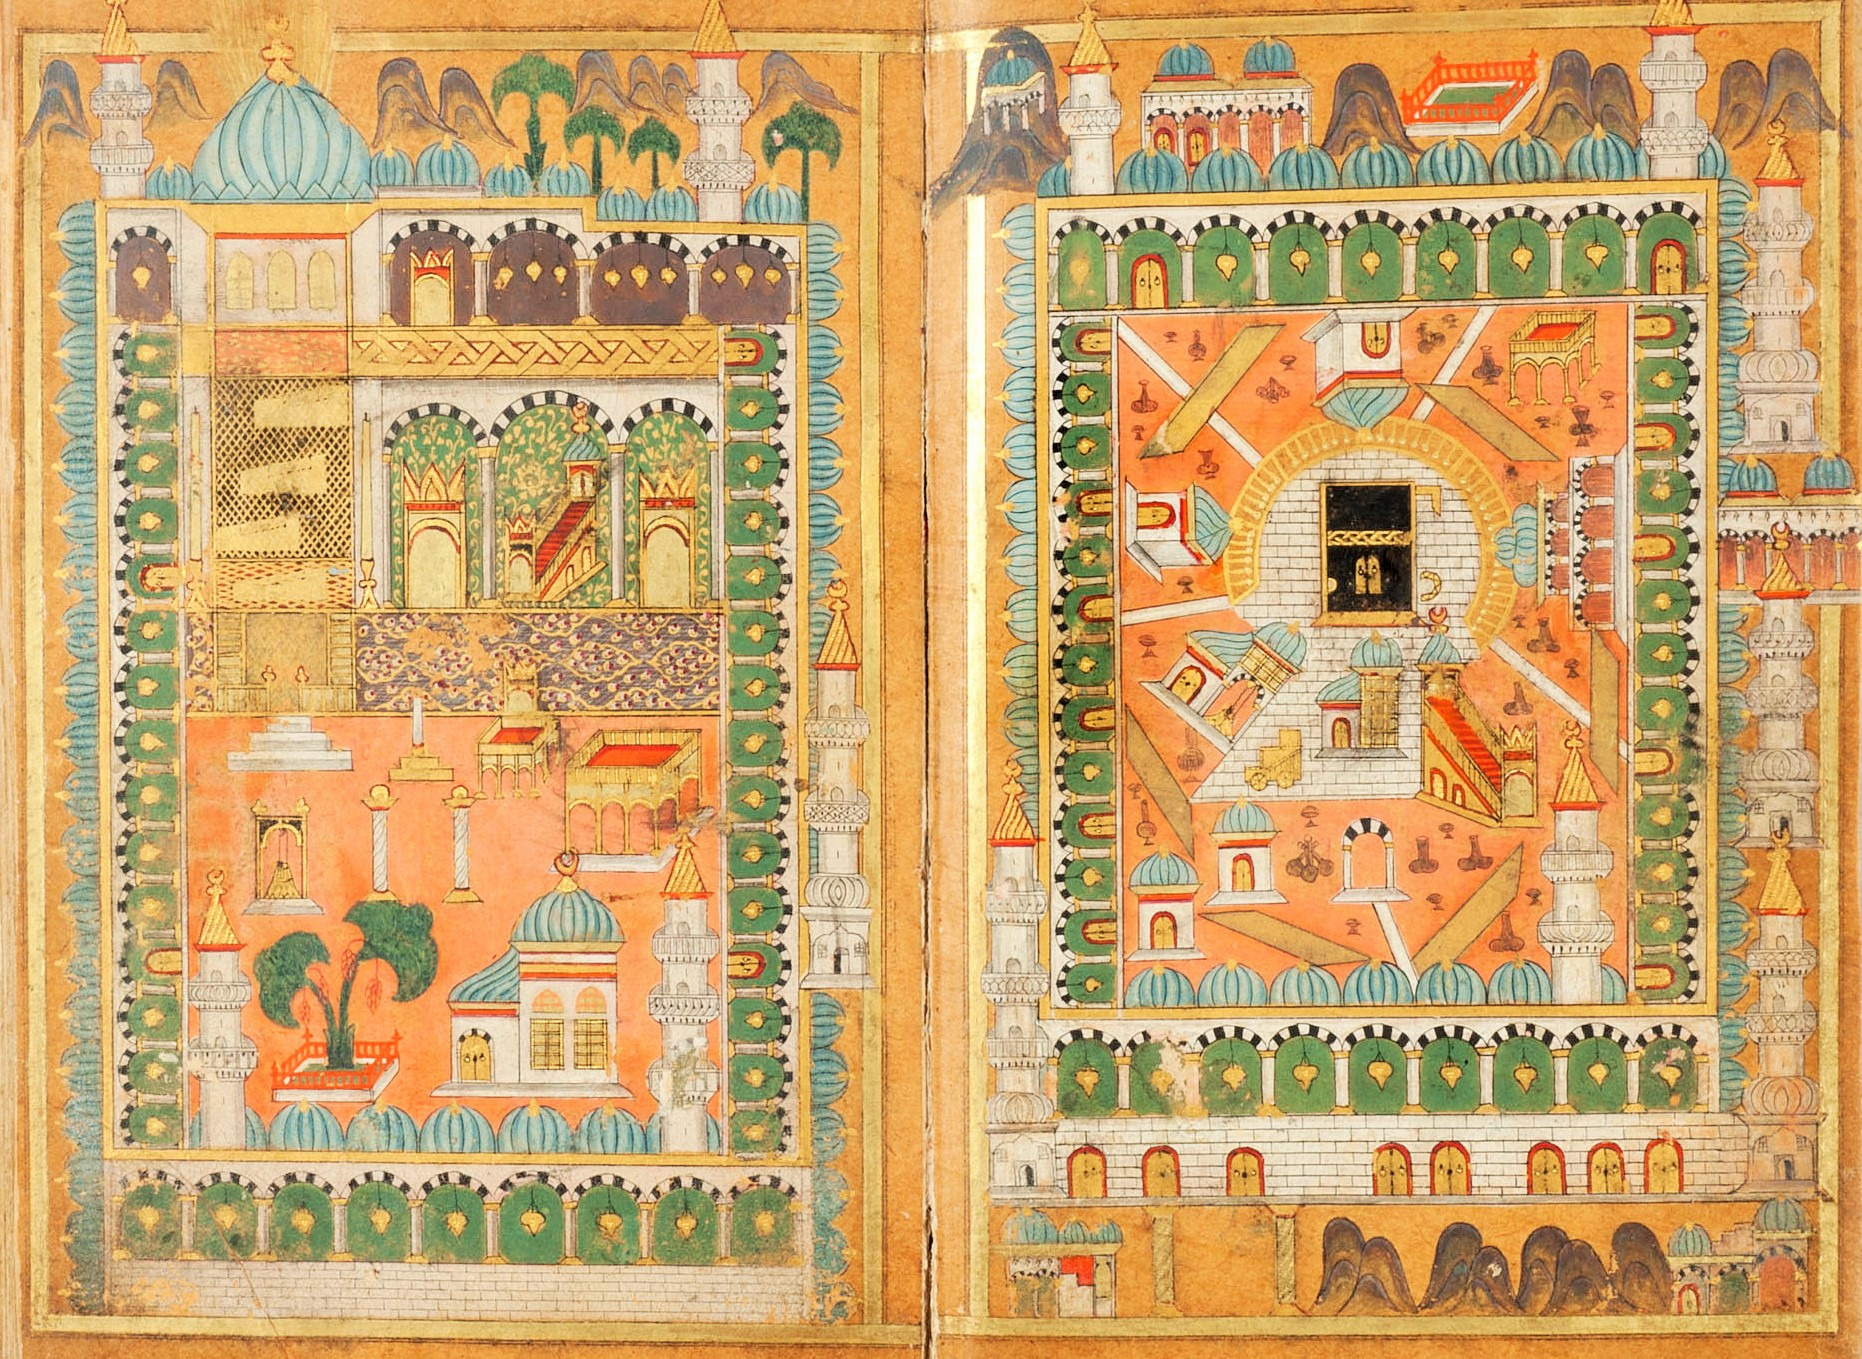 Depictions of Mecca and Medina